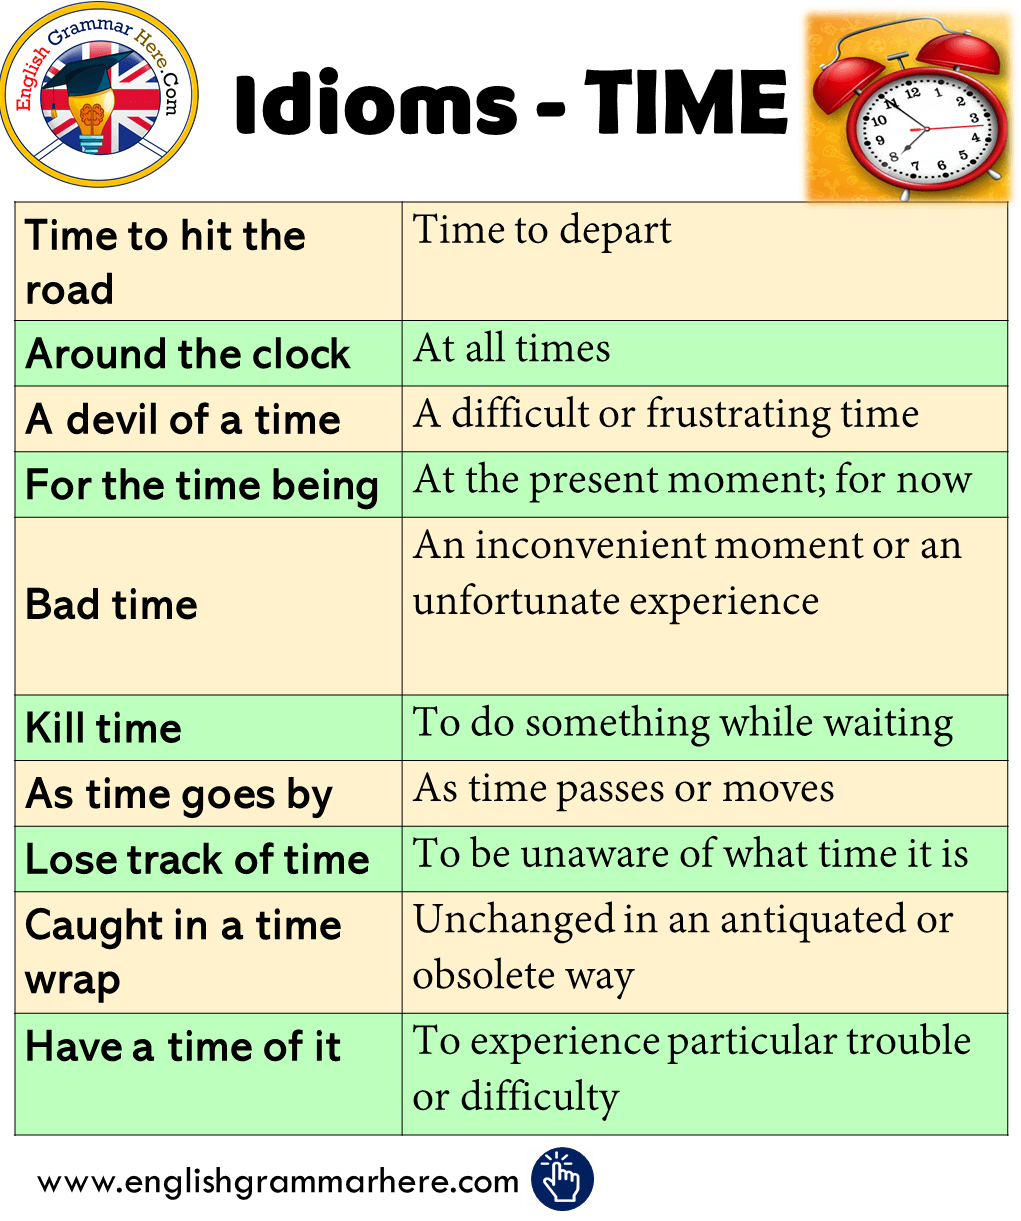 Idioms about TIME in English